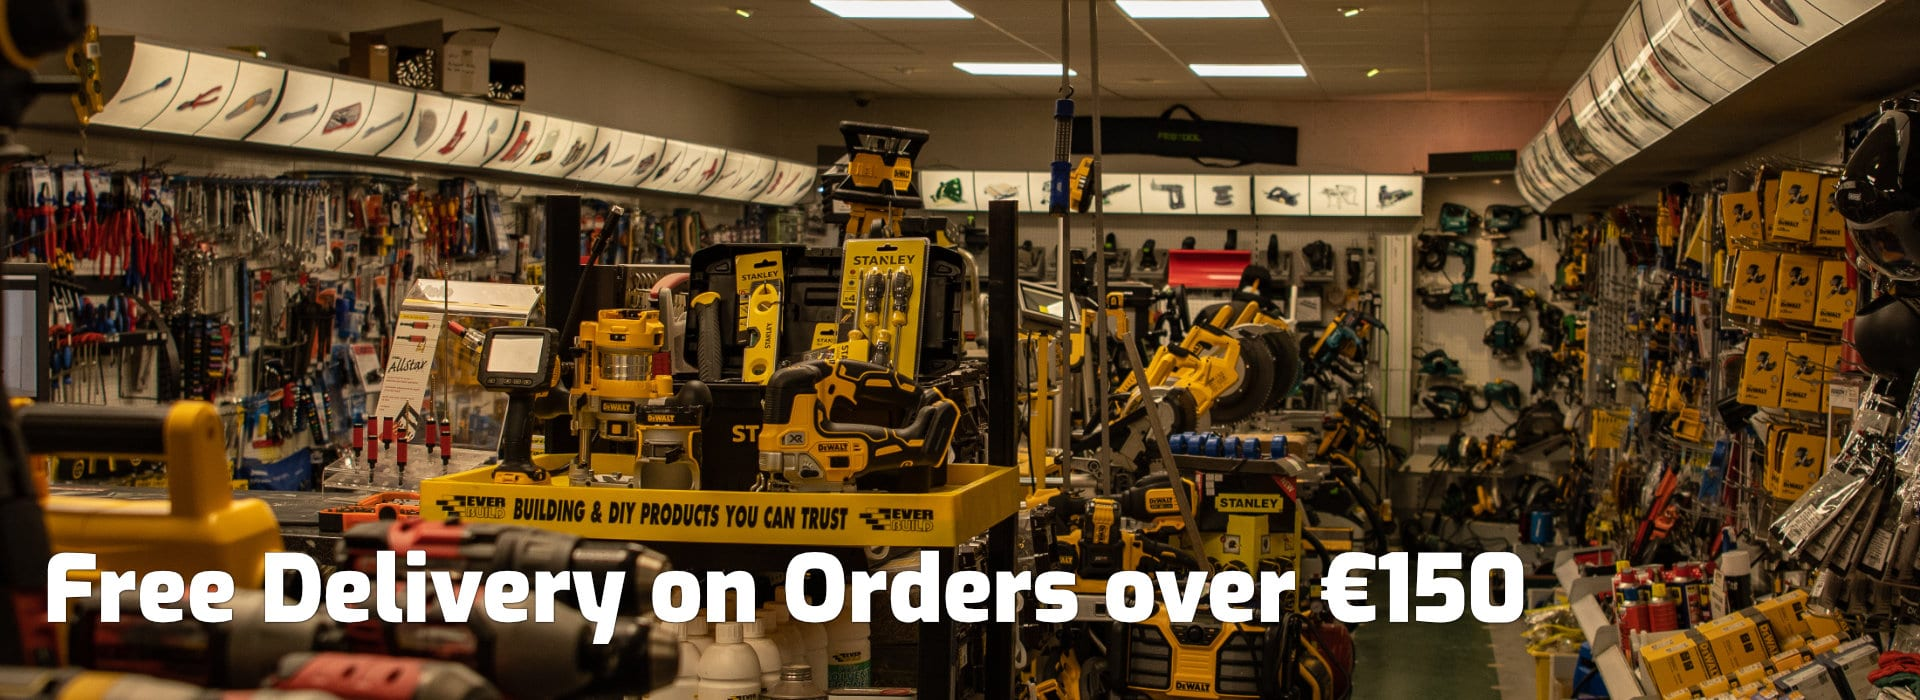 free delivery power tools ireland over €150